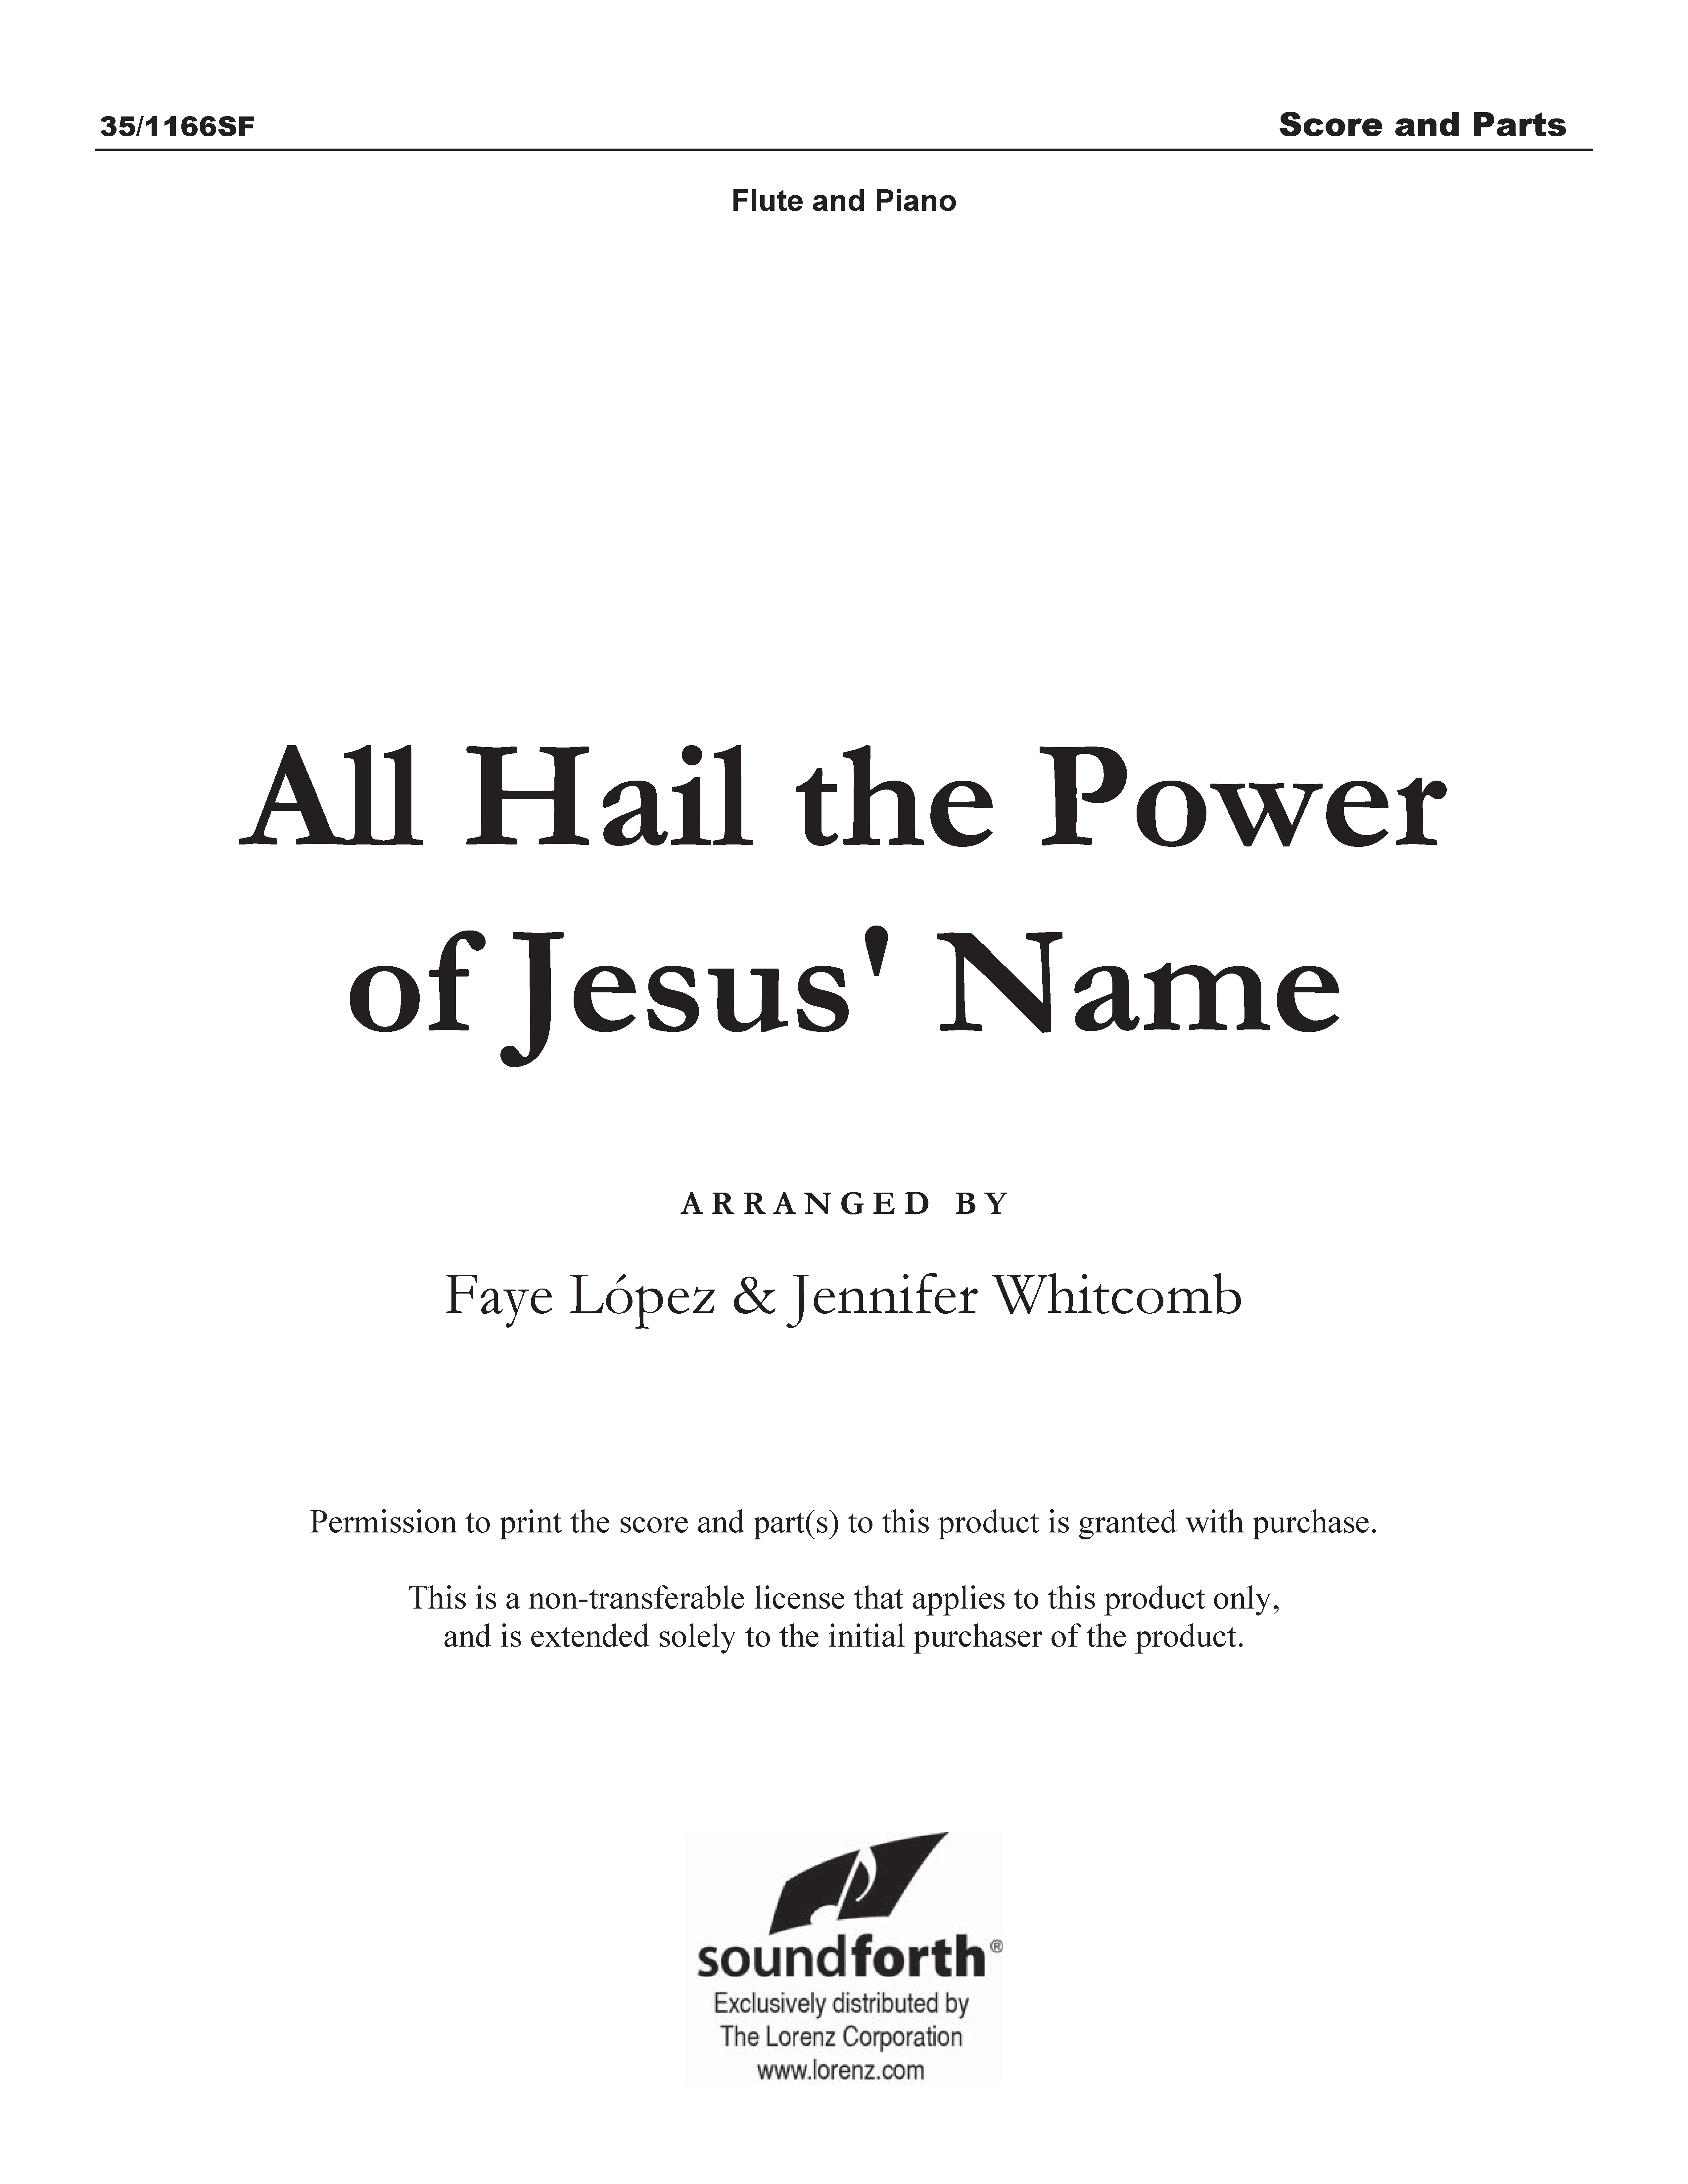 All Hail the Power of Jesus' Name (Digital Delivery)